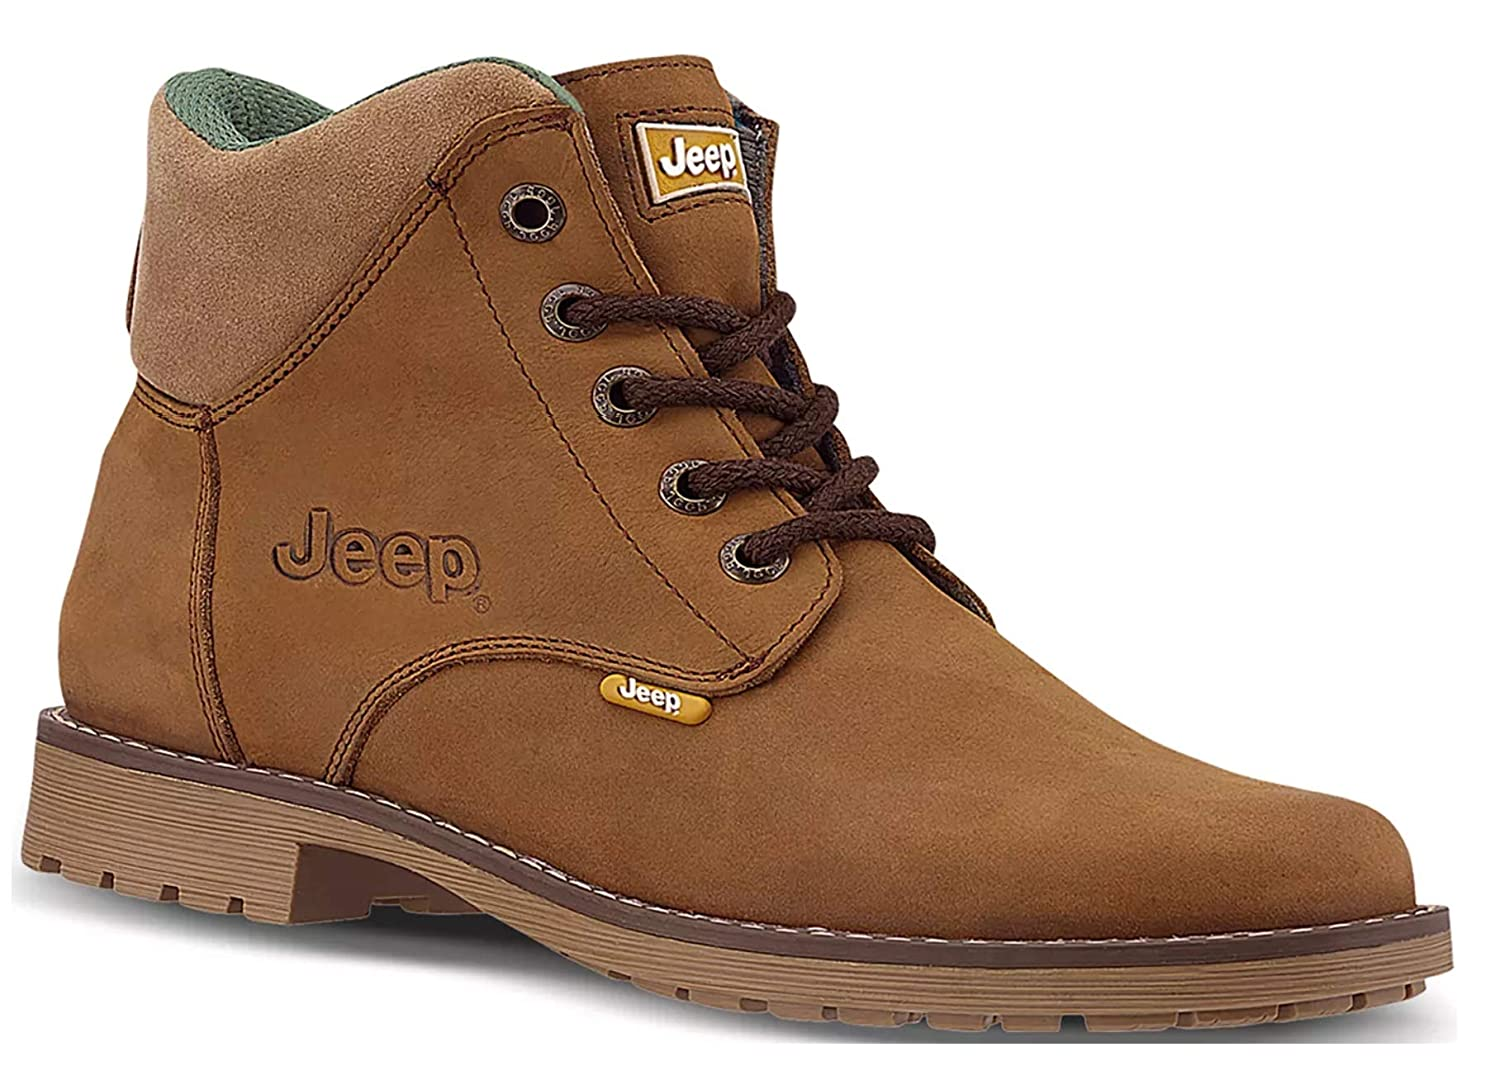 Jeep Women's Hiking Boot Series Ankle High Leather Booties Outdoor Camping Shoes